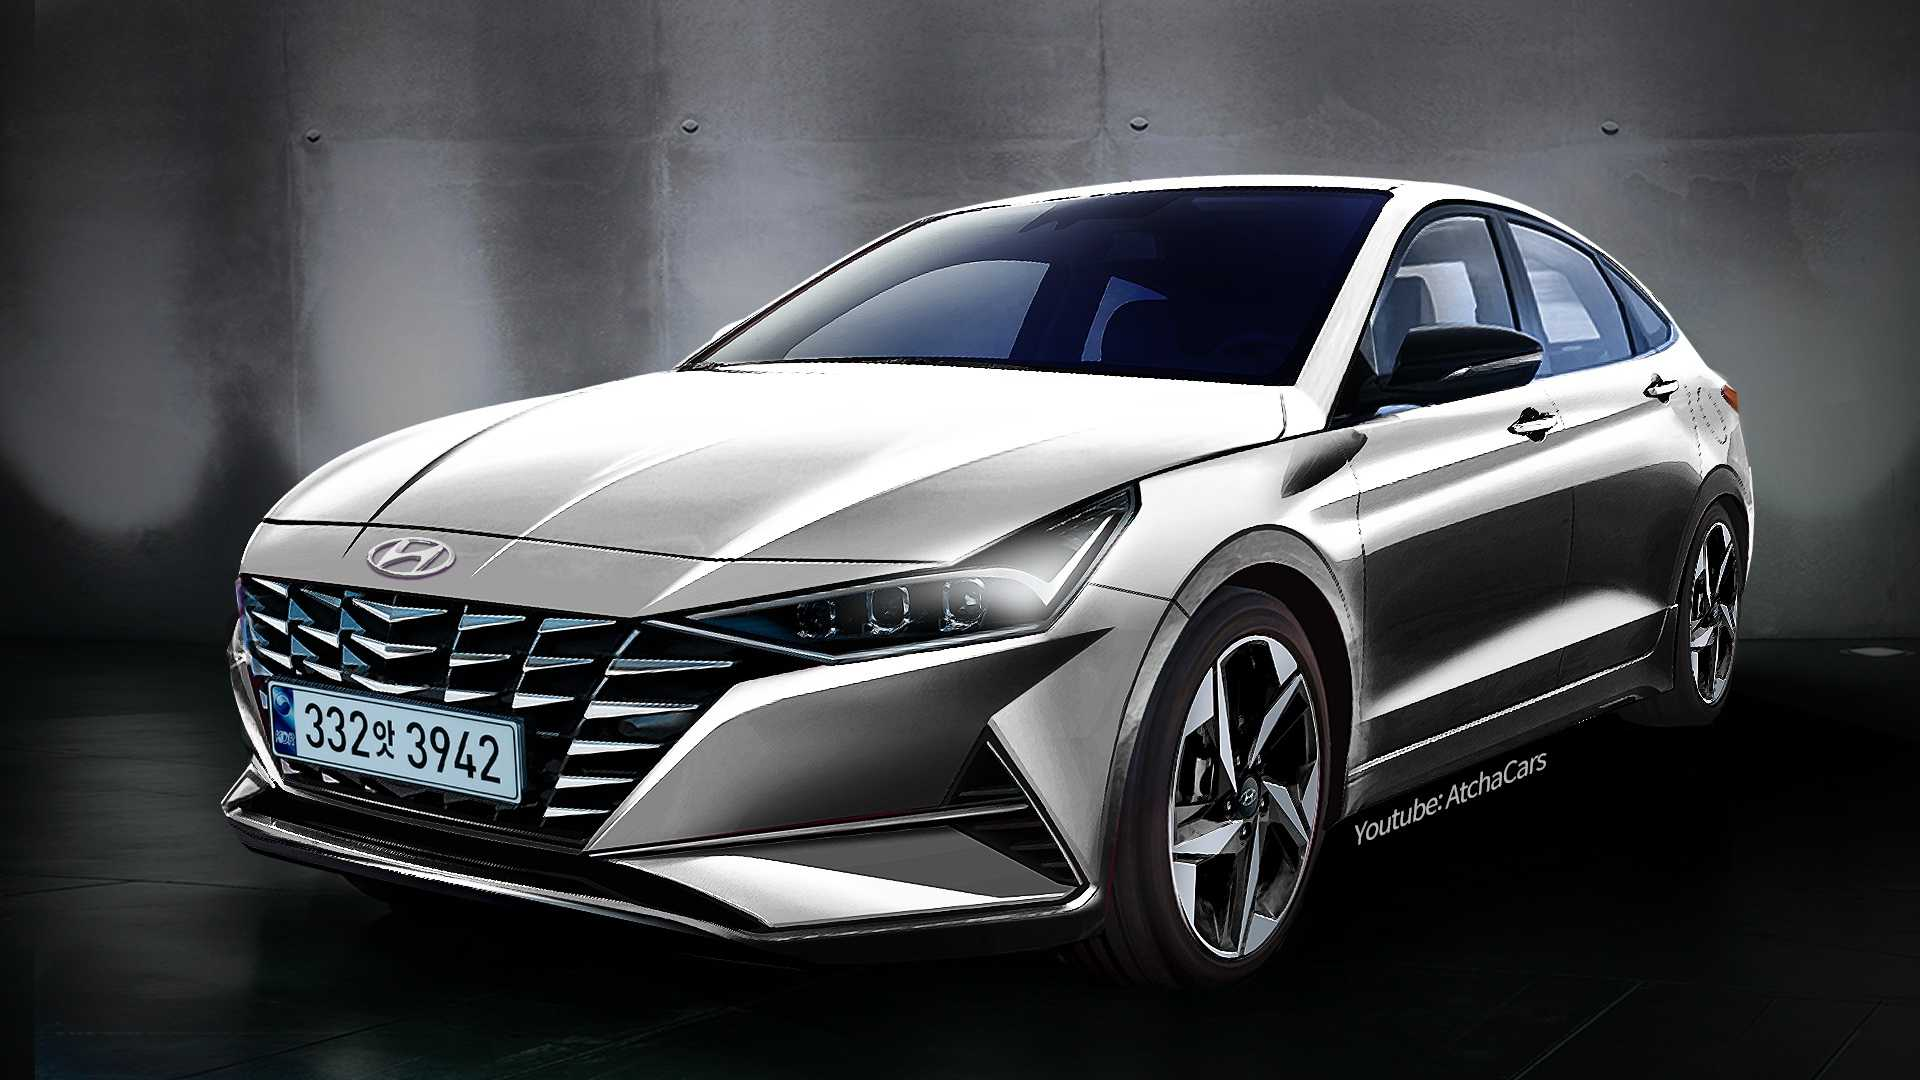 3 Hyundai Elantra Rendering Looks Crazy, Is Accurate